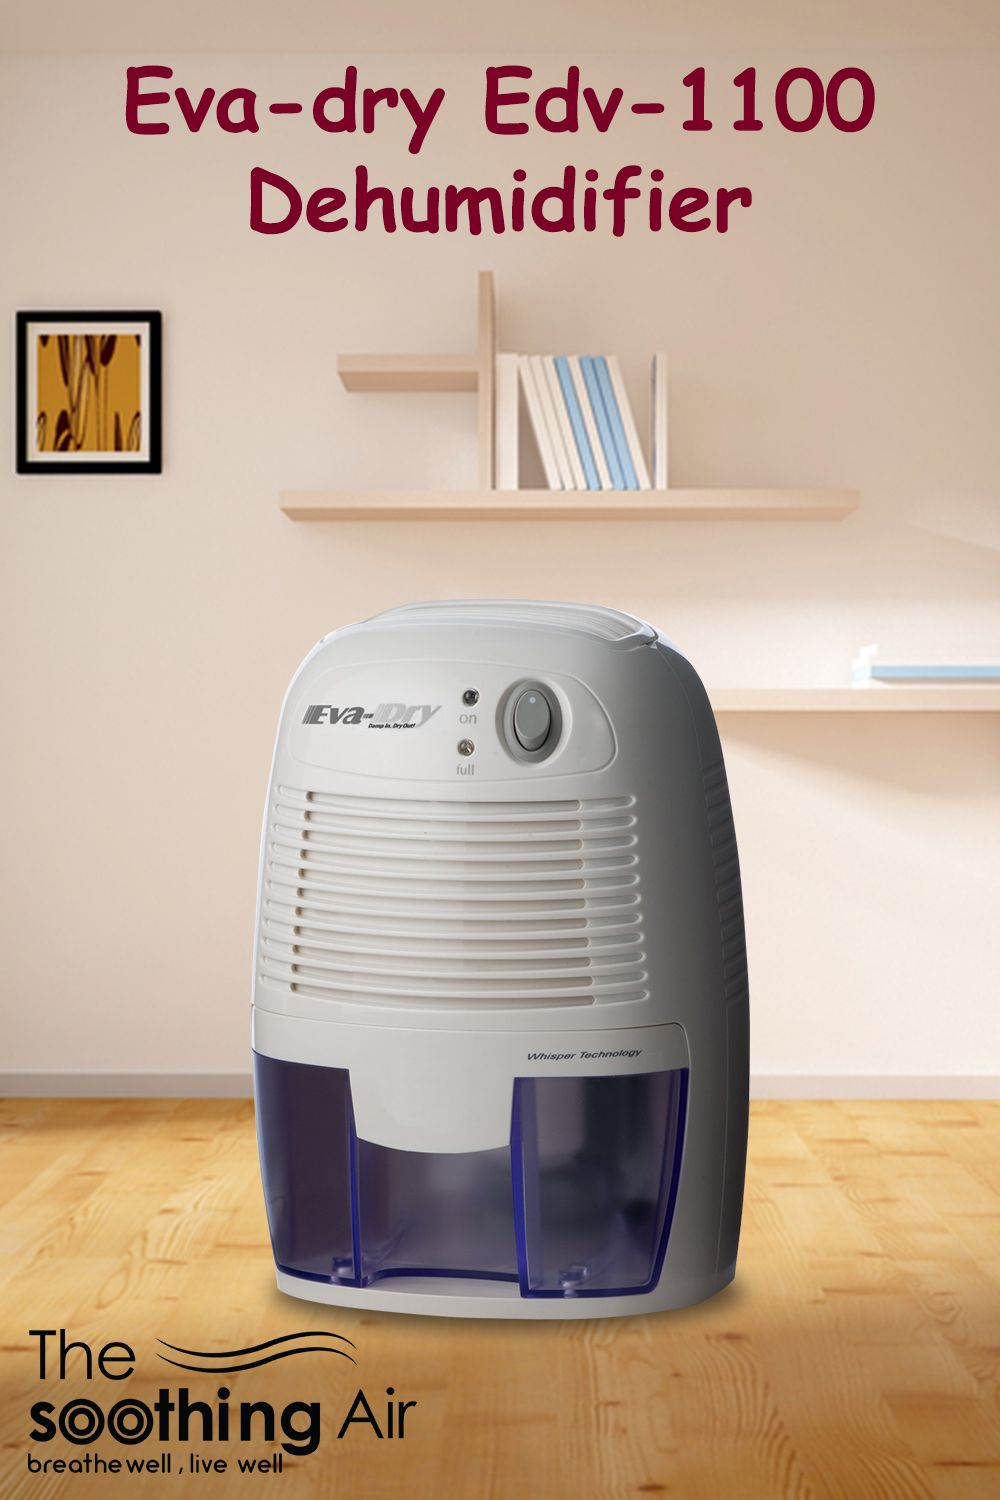 Top 5 Small Dehumidifiers April 2020 Reviews Buyers Guide Dehumidifiers Best Humidifier Bright Decor